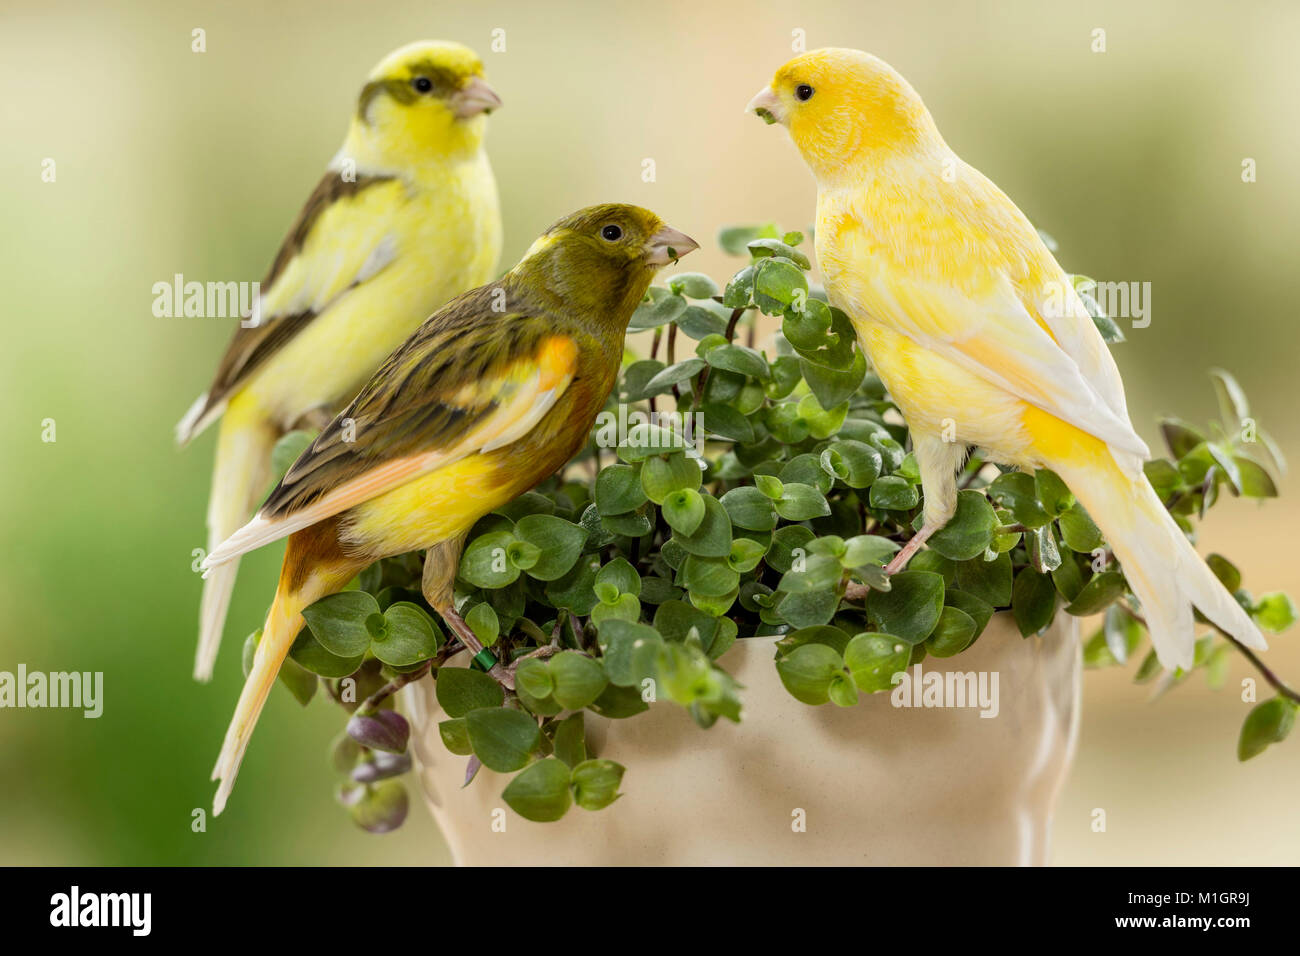 Domestic canary. Three birds of different colour eating Bolivian Jew. Germany - Stock Image